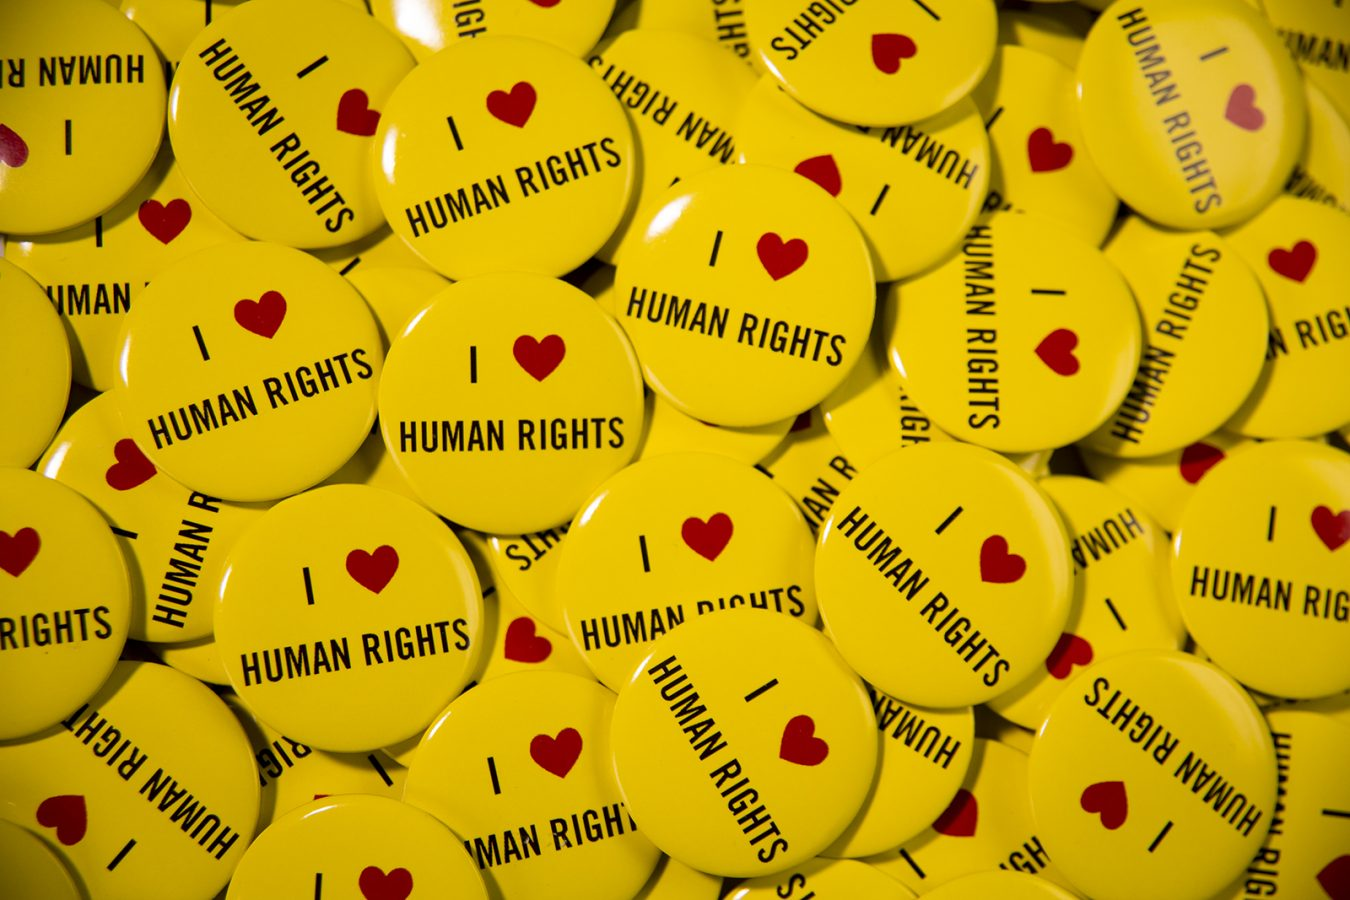 Hundreds of yellow badges with 'I heart human rights' printed on them.